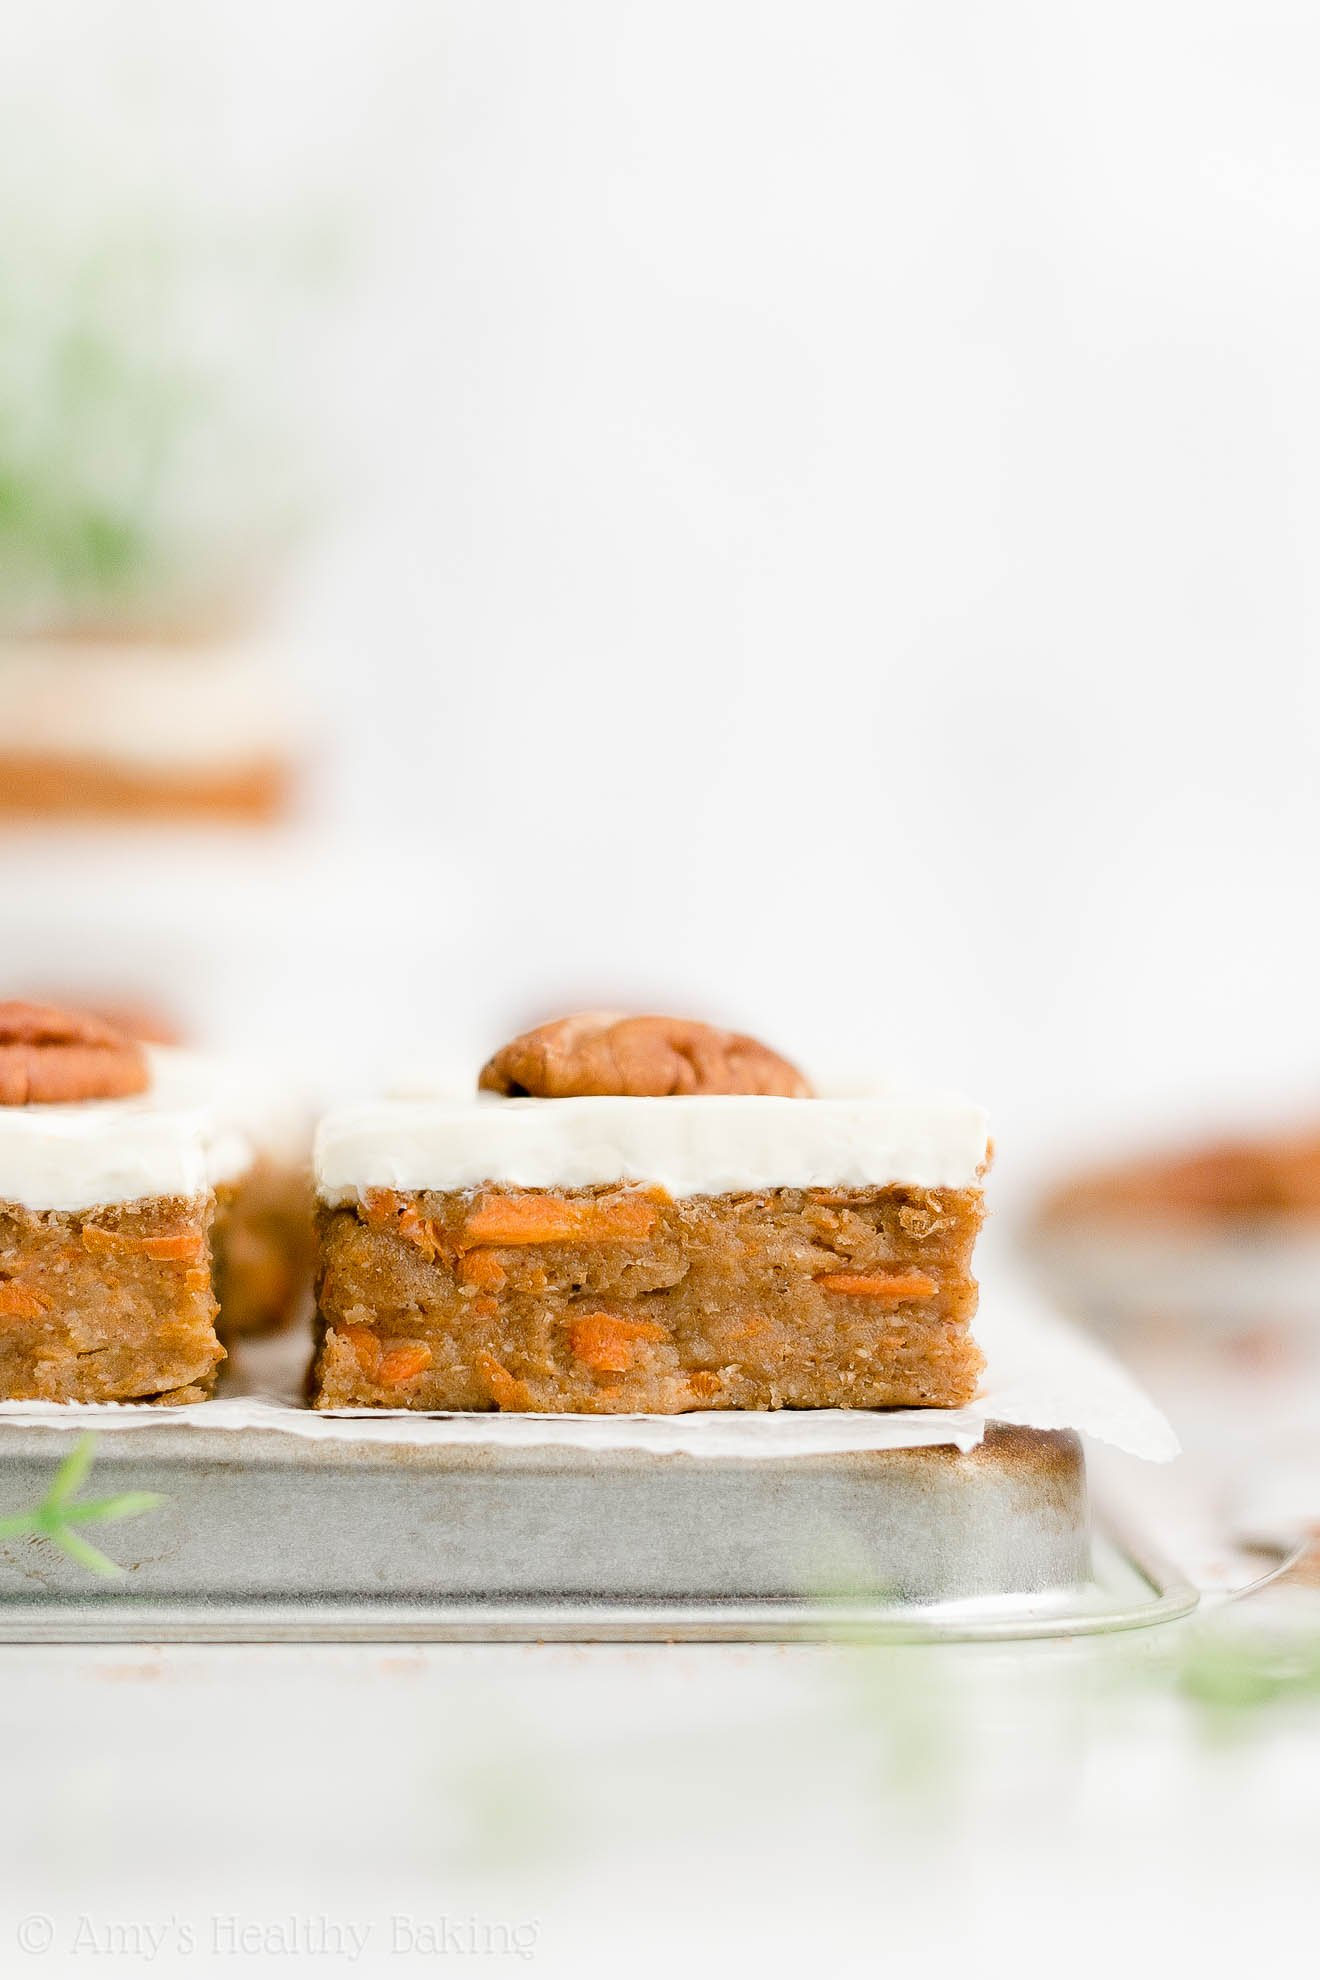 Easy Healthy Homemade Gluten Free Sugar Free Low Calorie Carrot Cake Bars